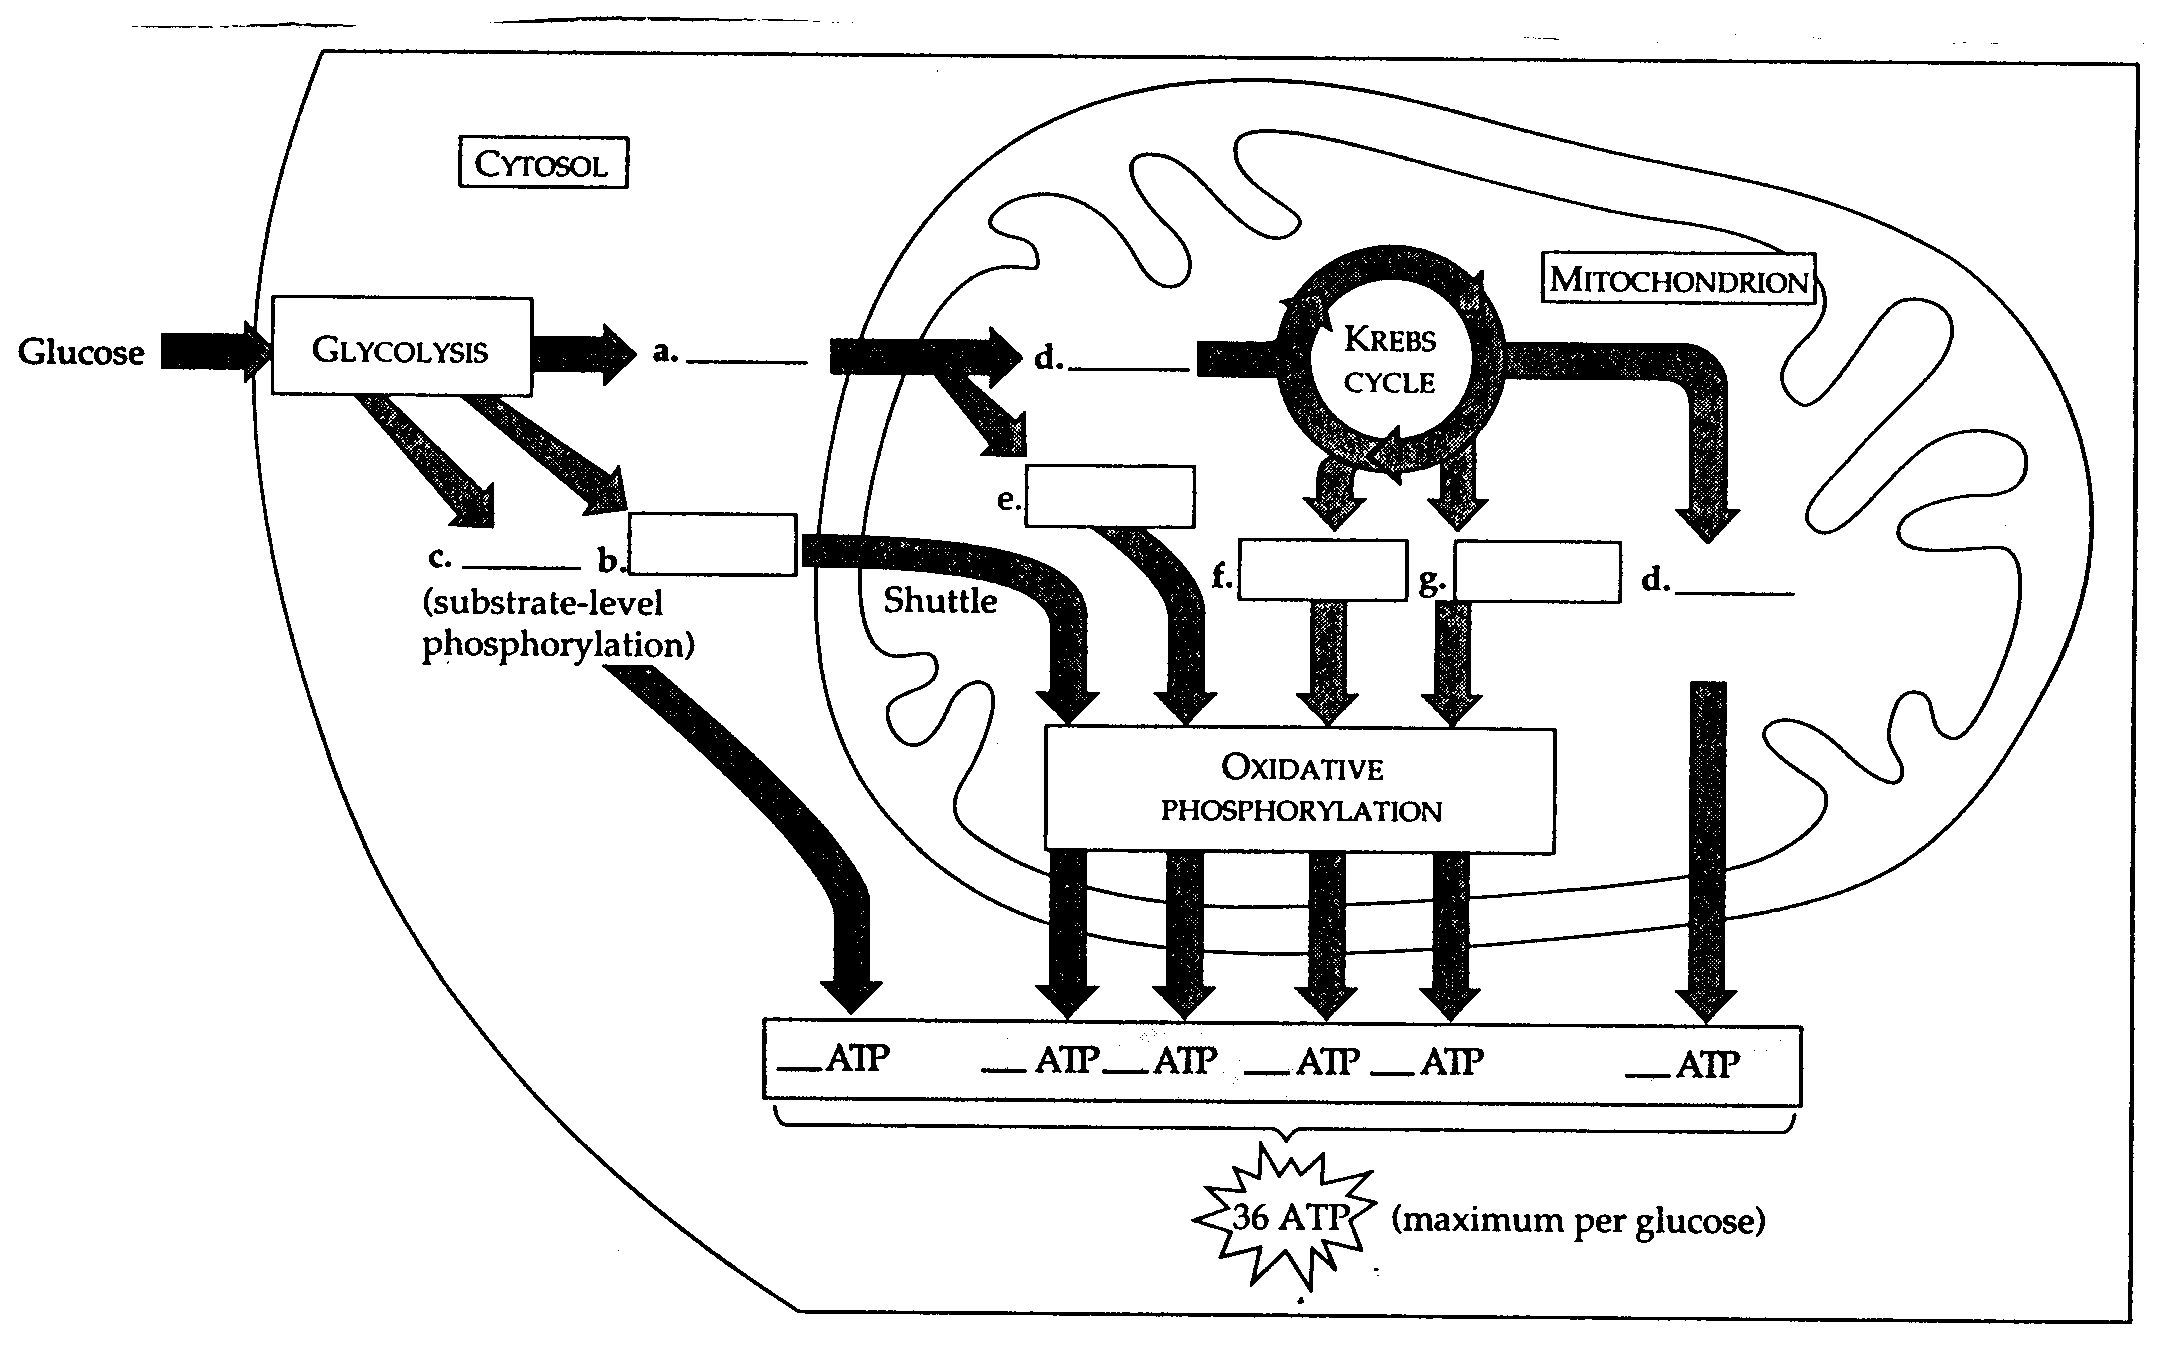 Free Worksheet Cellular Respiration Diagram Worksheet – Cellular Respiration Diagram Worksheet